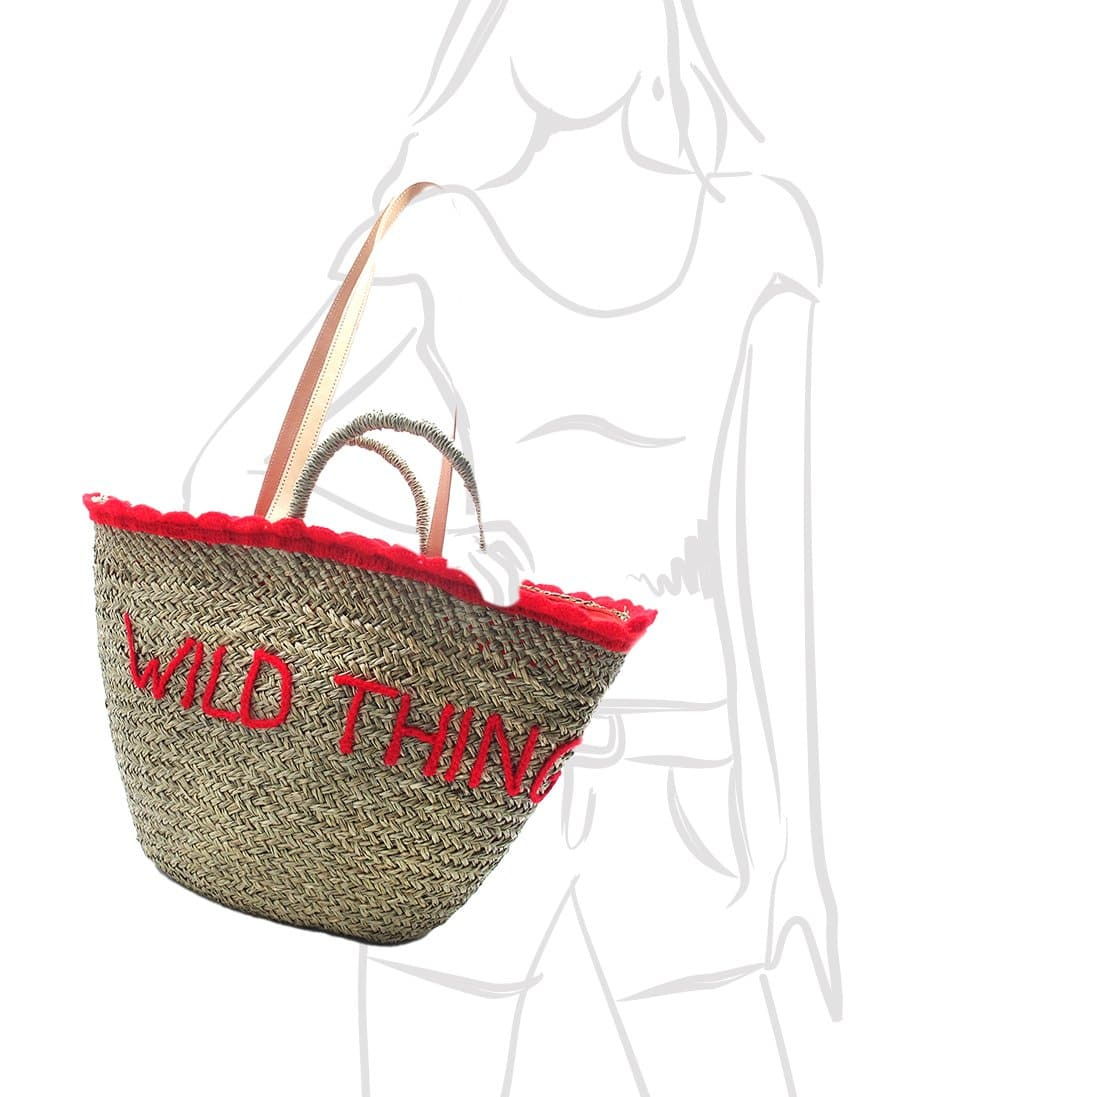 WILD THING BAG - Bali-Bali